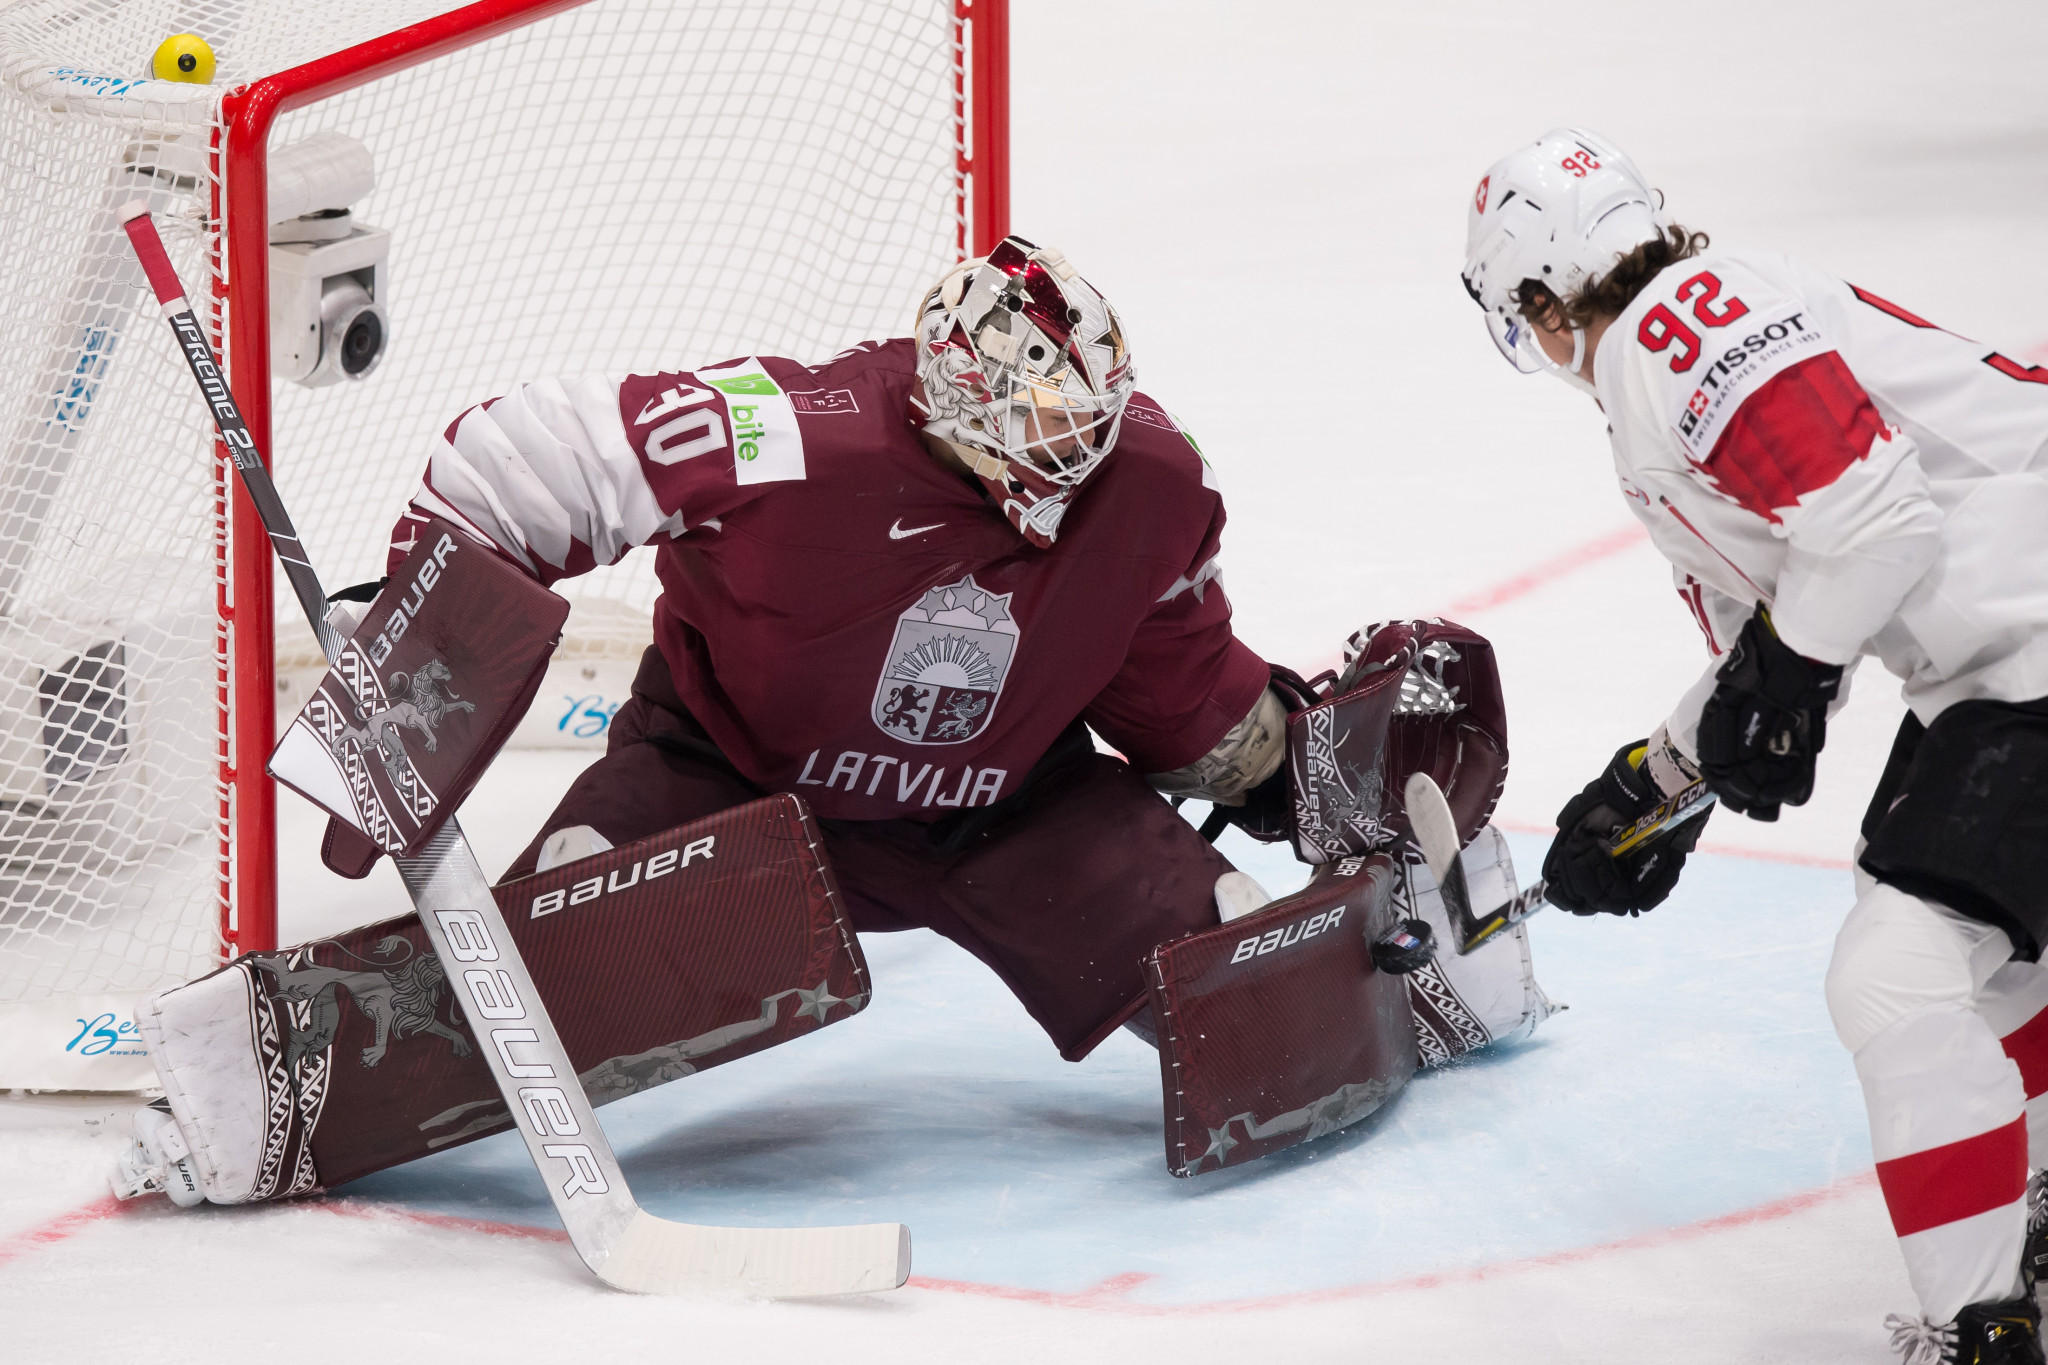 IIHF to discuss 2021 World Championships next month after Latvia threatens withdrawal